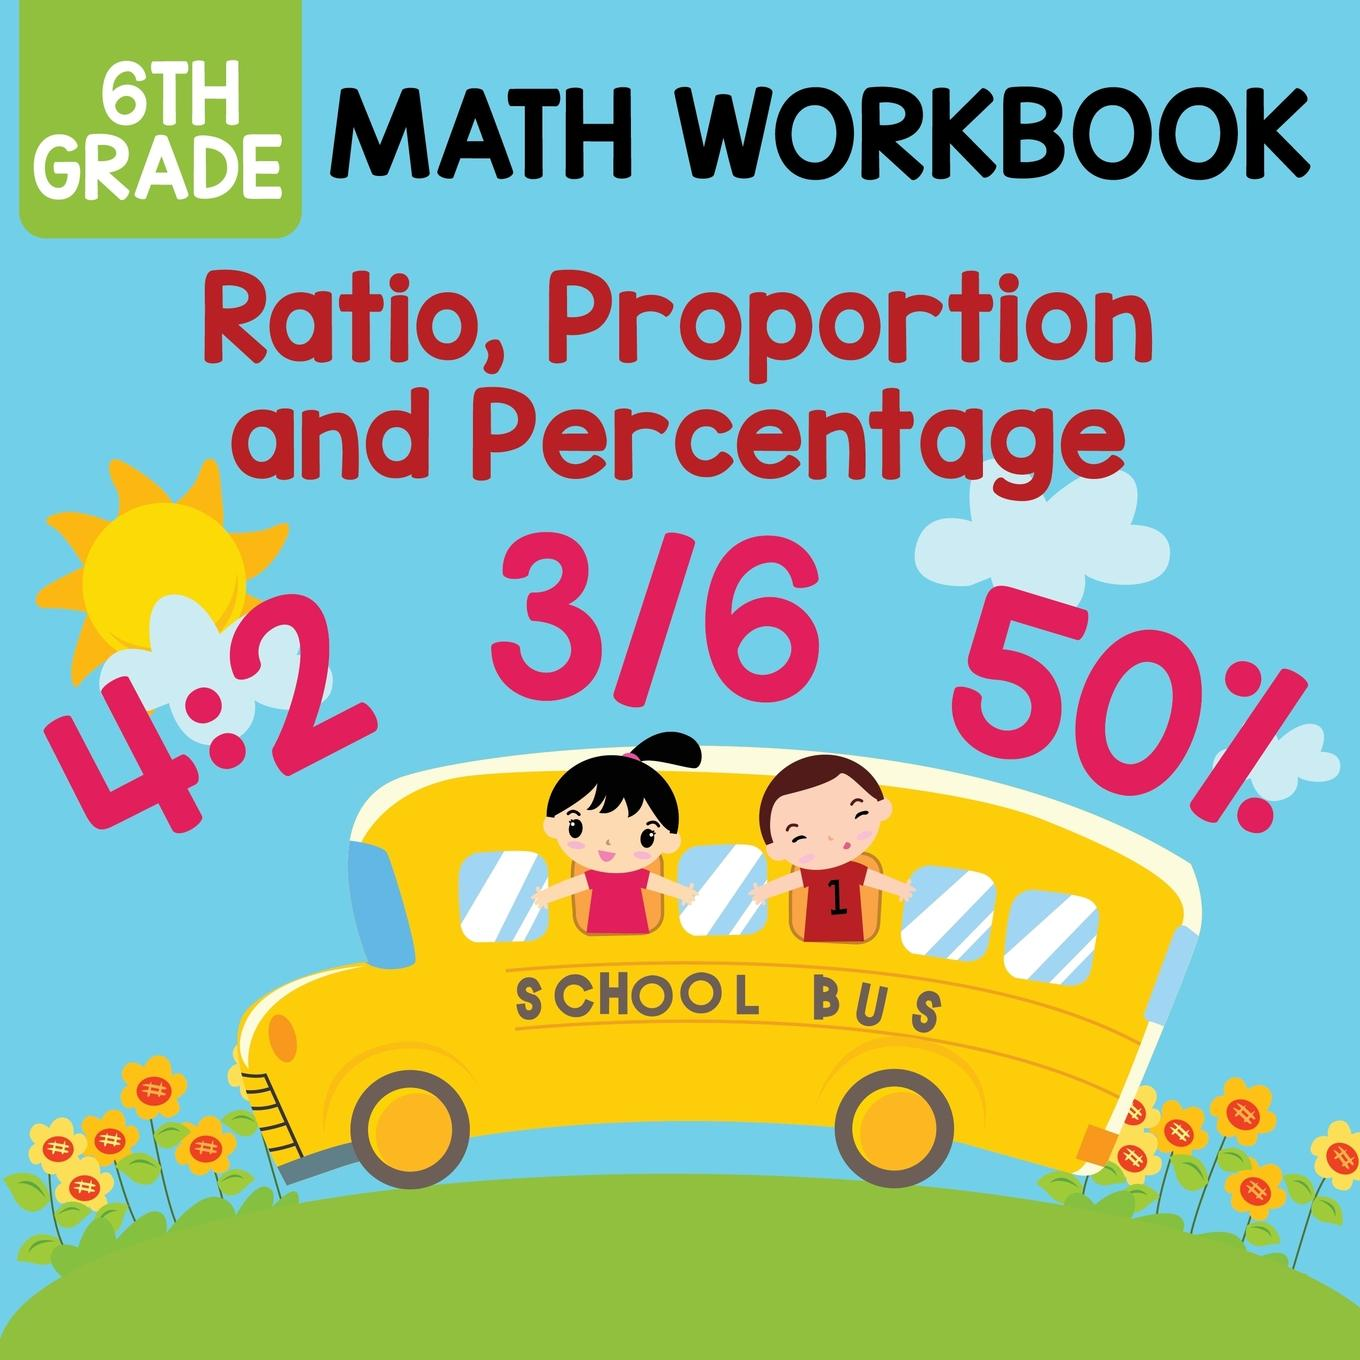 6th Grade Math Workbook Ratio Proportion And Percentage